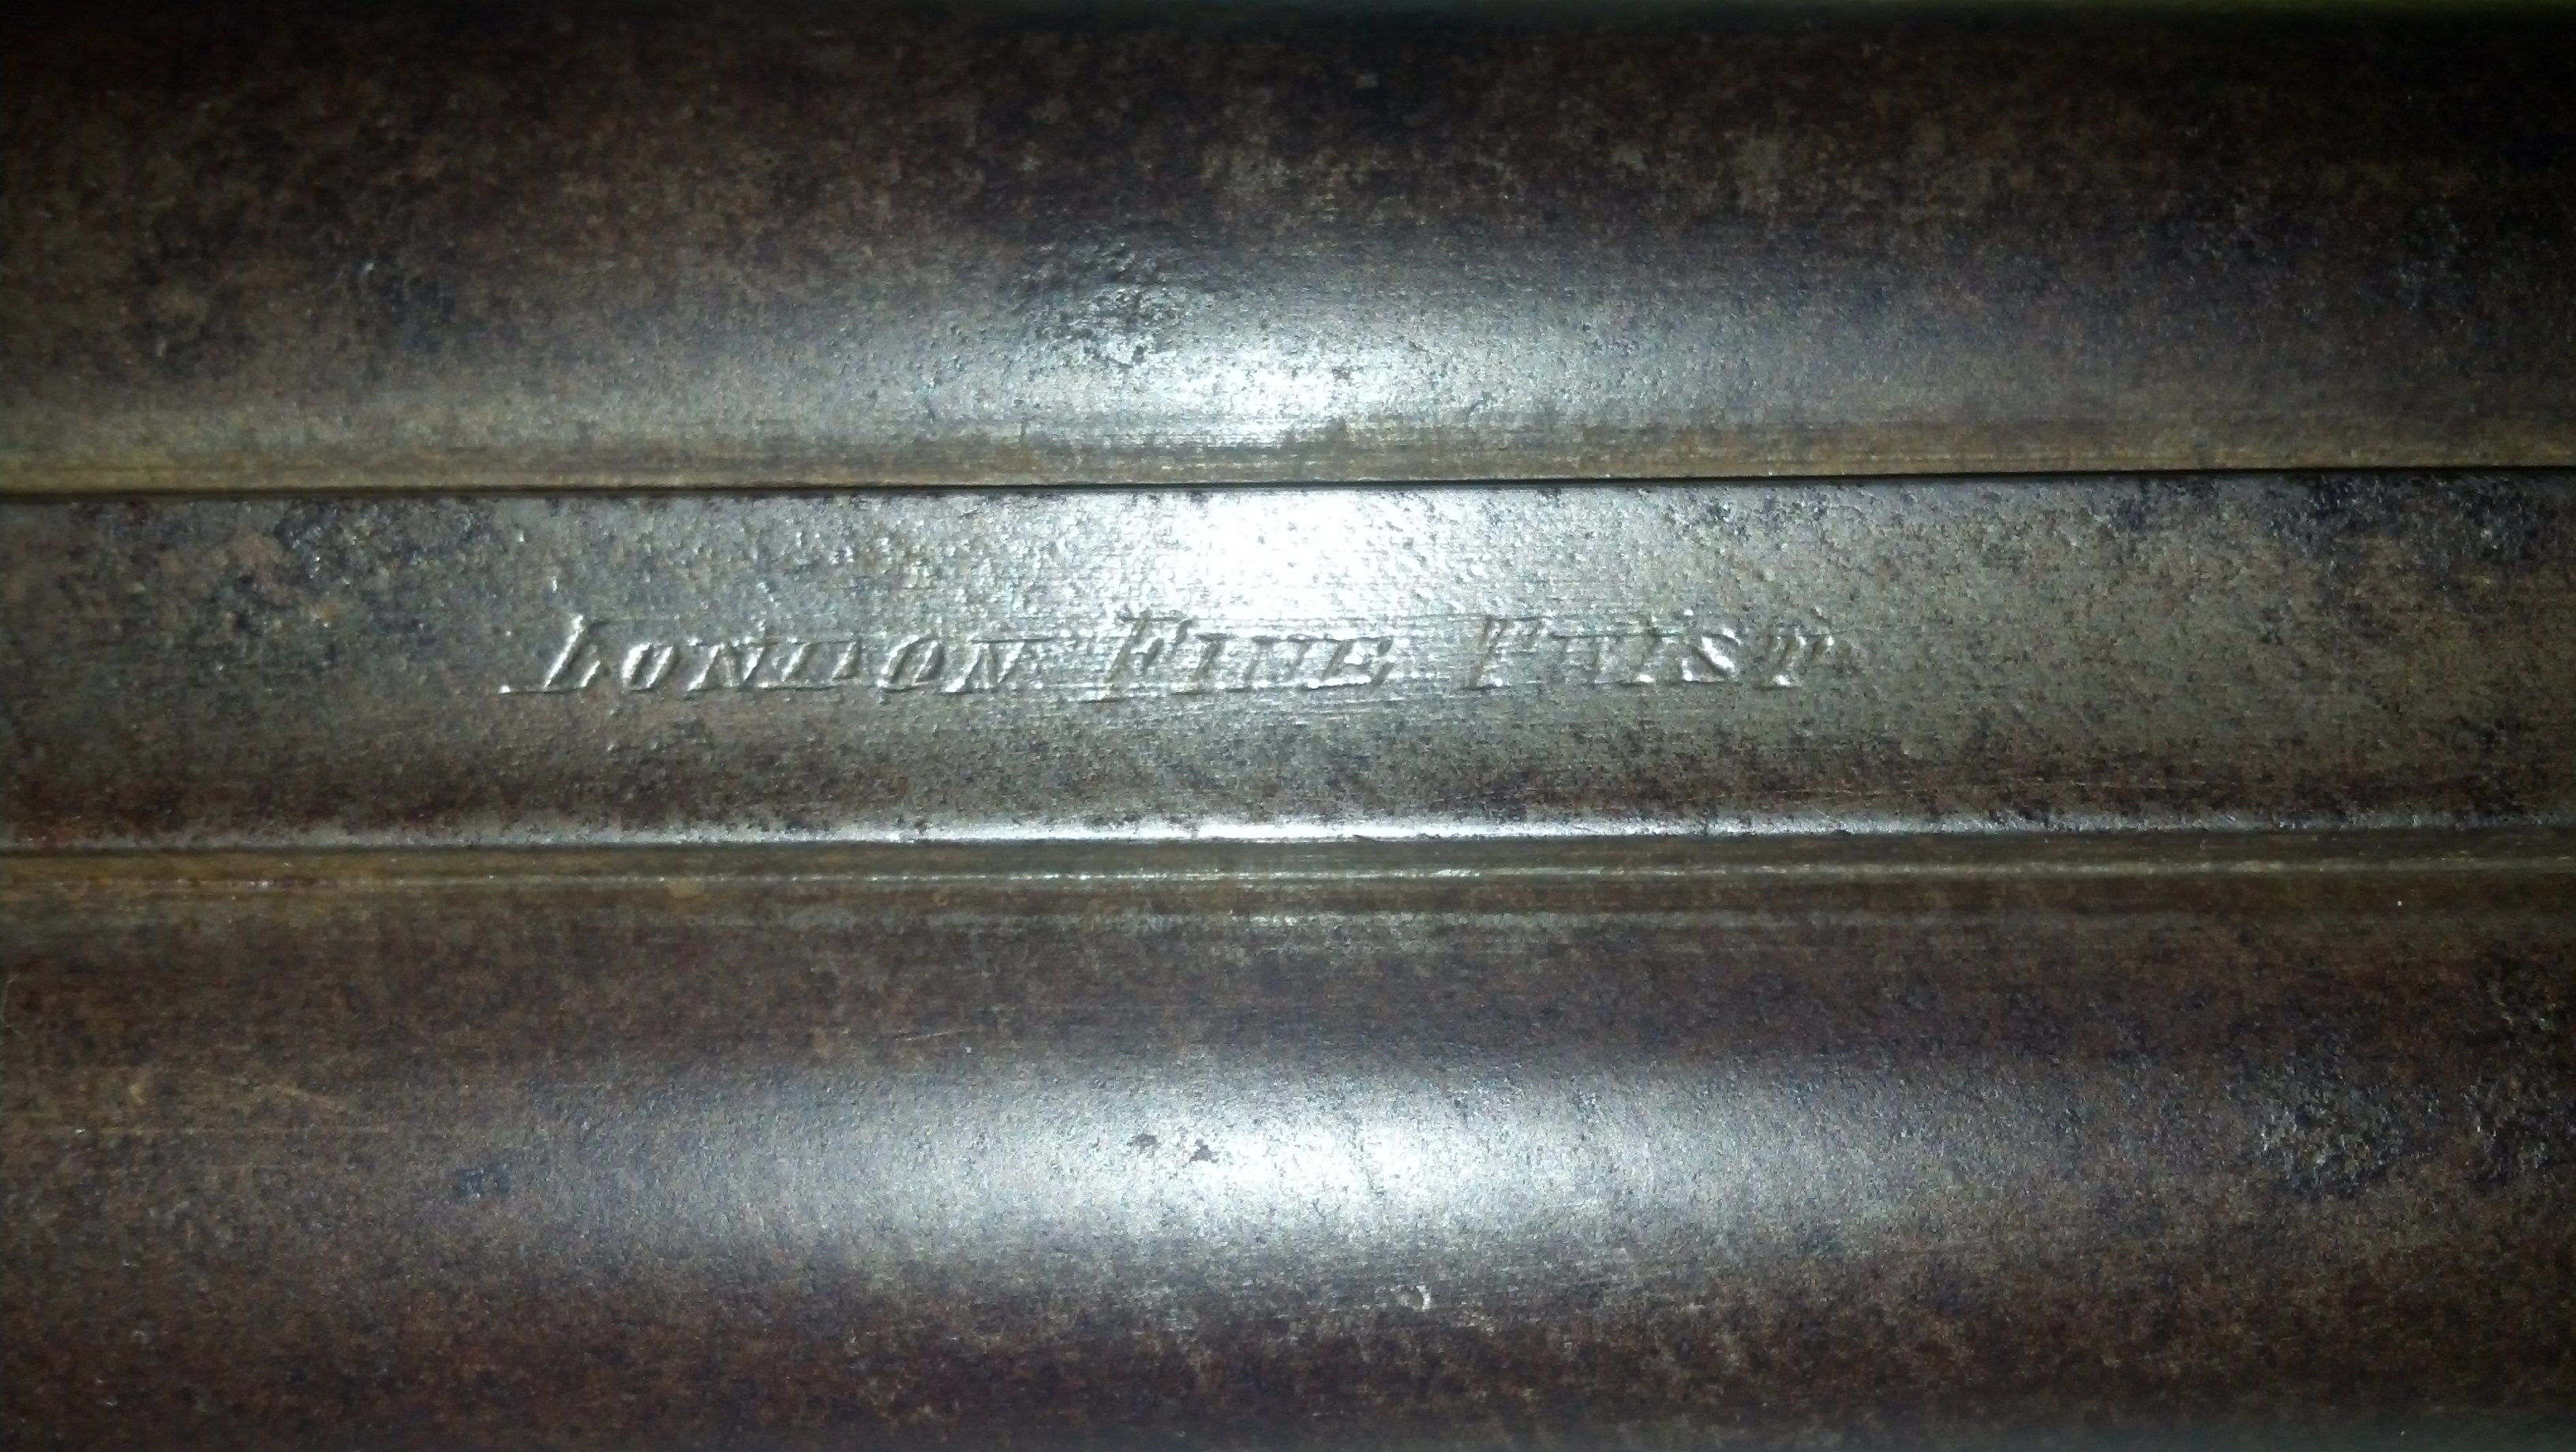 Recent Acquisition: Wm Moore & Co. Damascus 12 ga Center fire Side by Side-img_20130629_065143_351.jpg